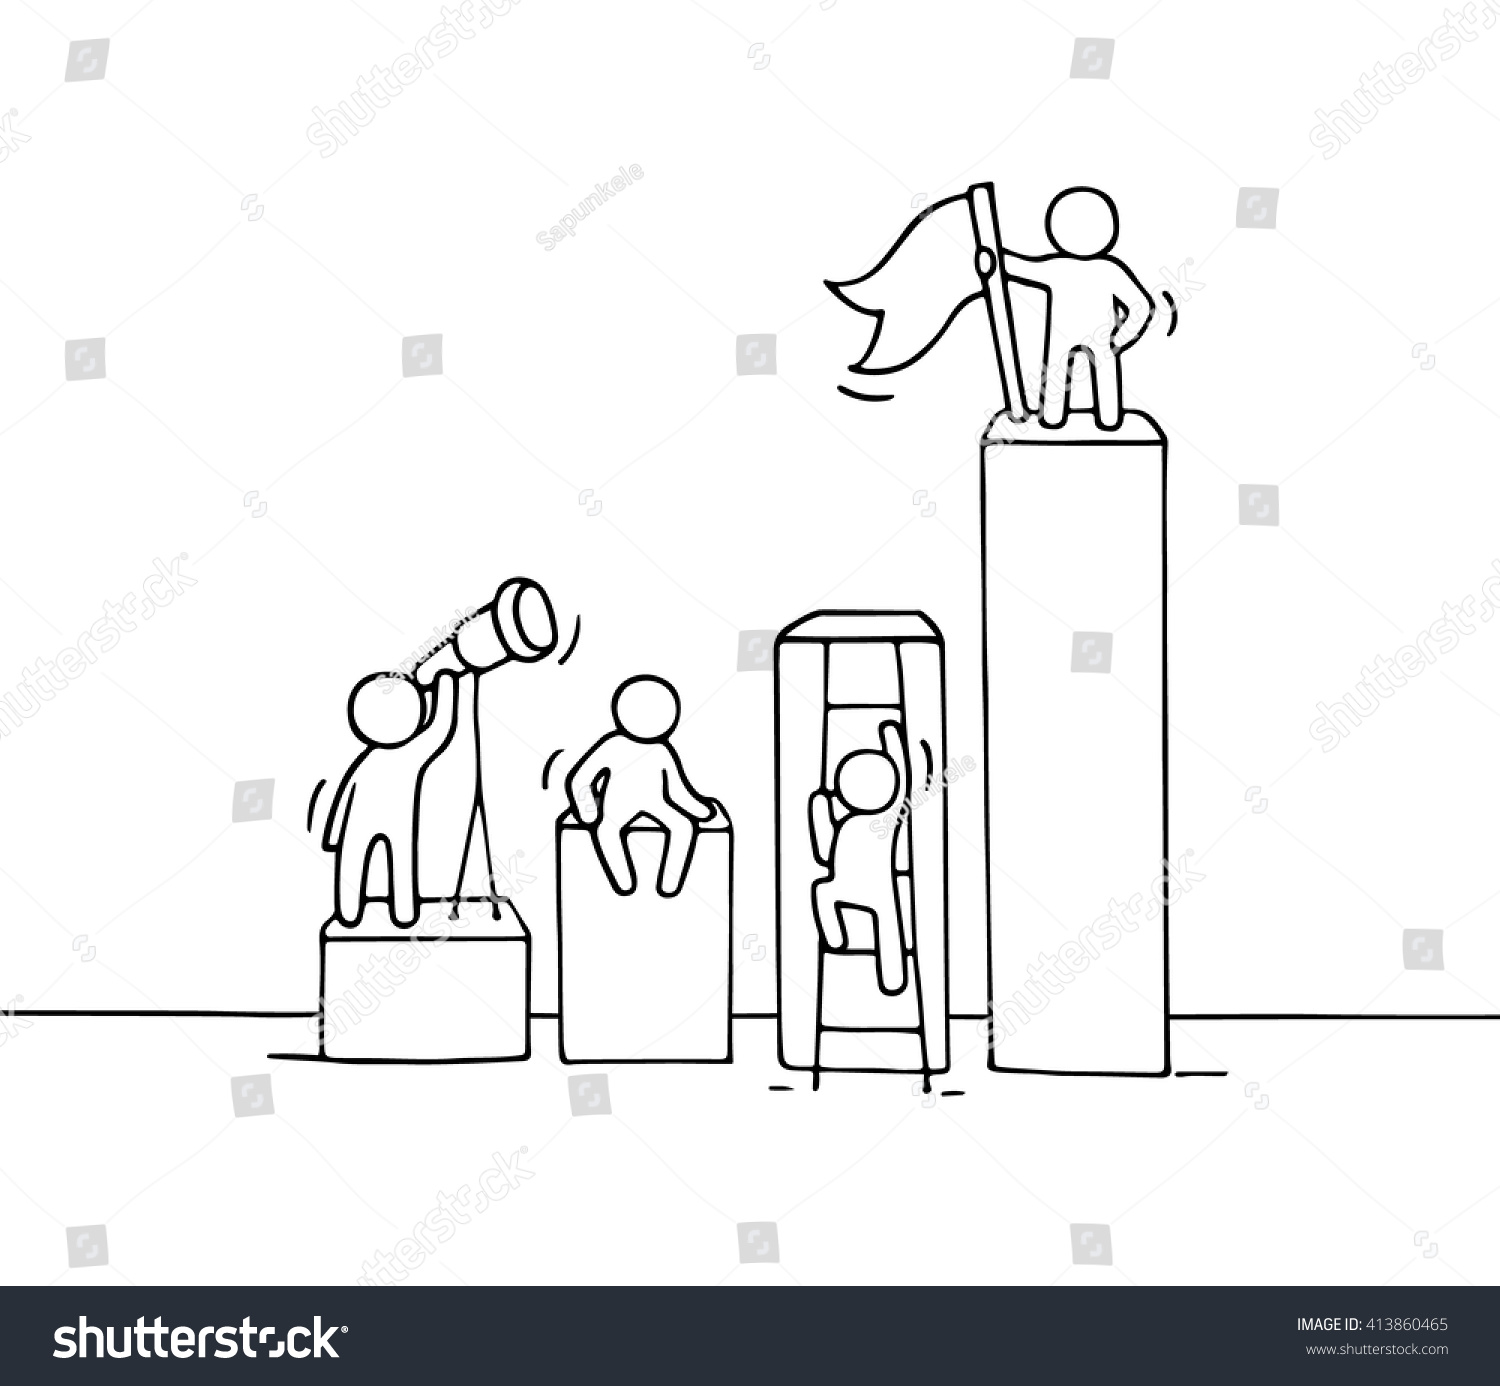 Sketch Diagram Working Little People Doodle Stock Vector 413860465